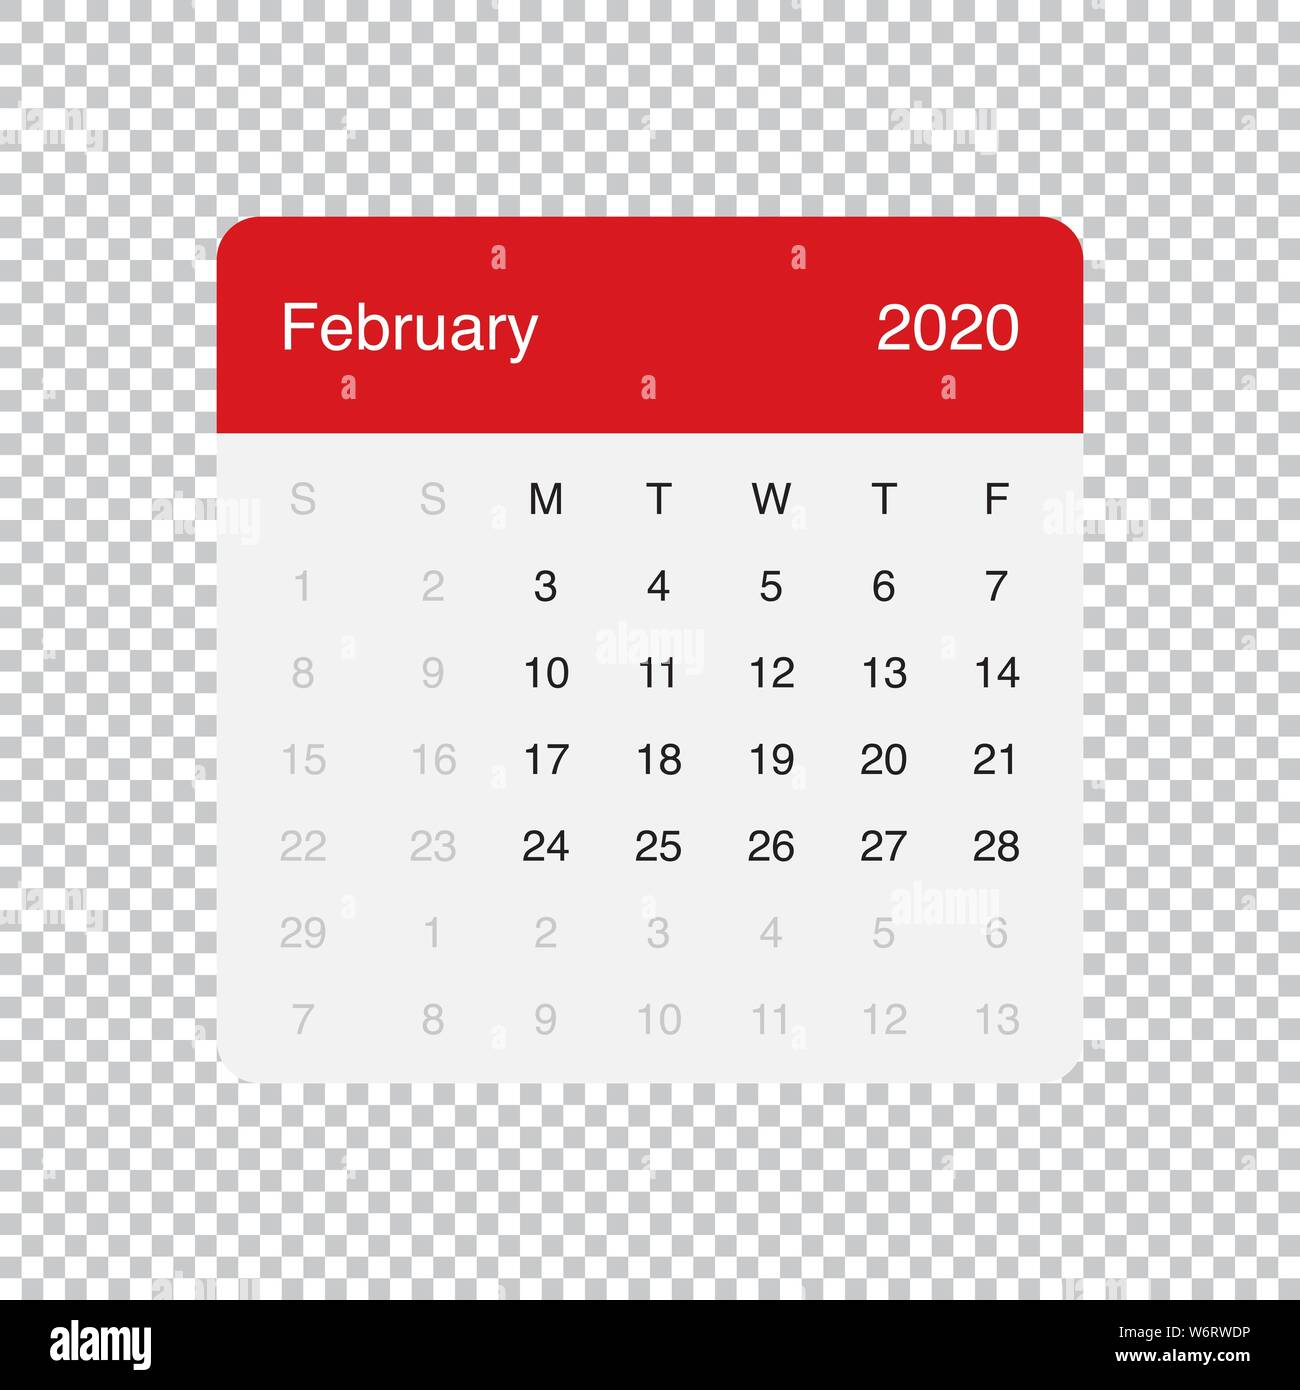 February Calendar 2020 Grid Calendar February 2020 Clean Minimal Table Simple Design. Basic